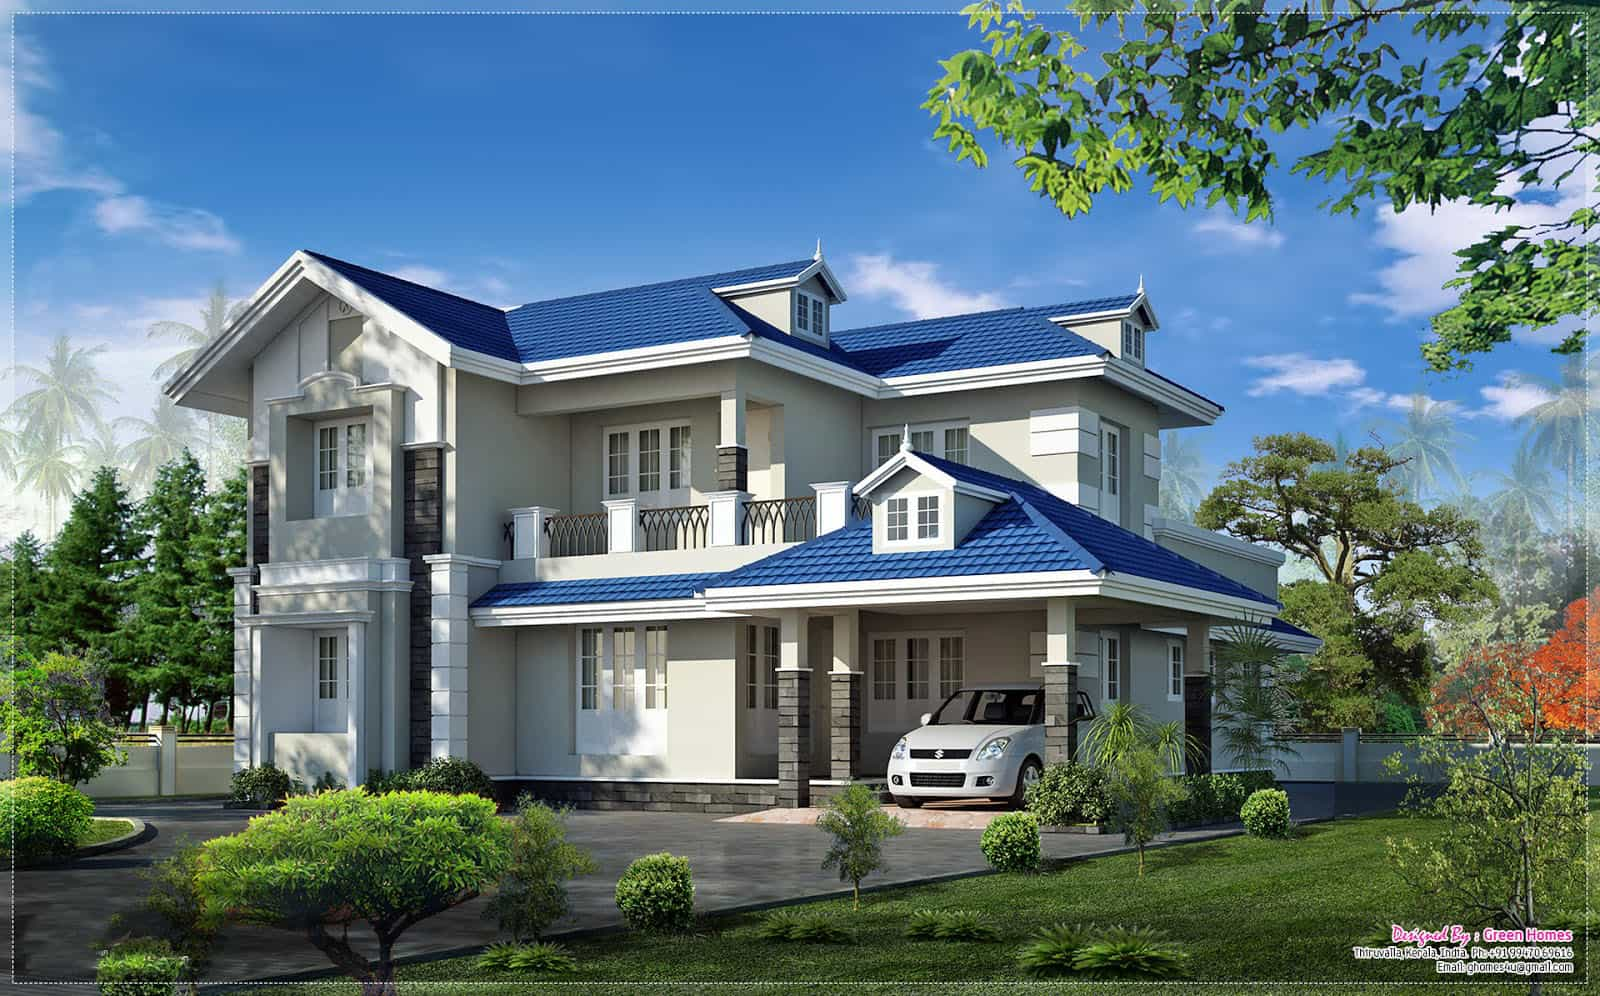 Small house plans in kerala 3 bedroom keralahouseplanner for Beautiful small house plans in kerala